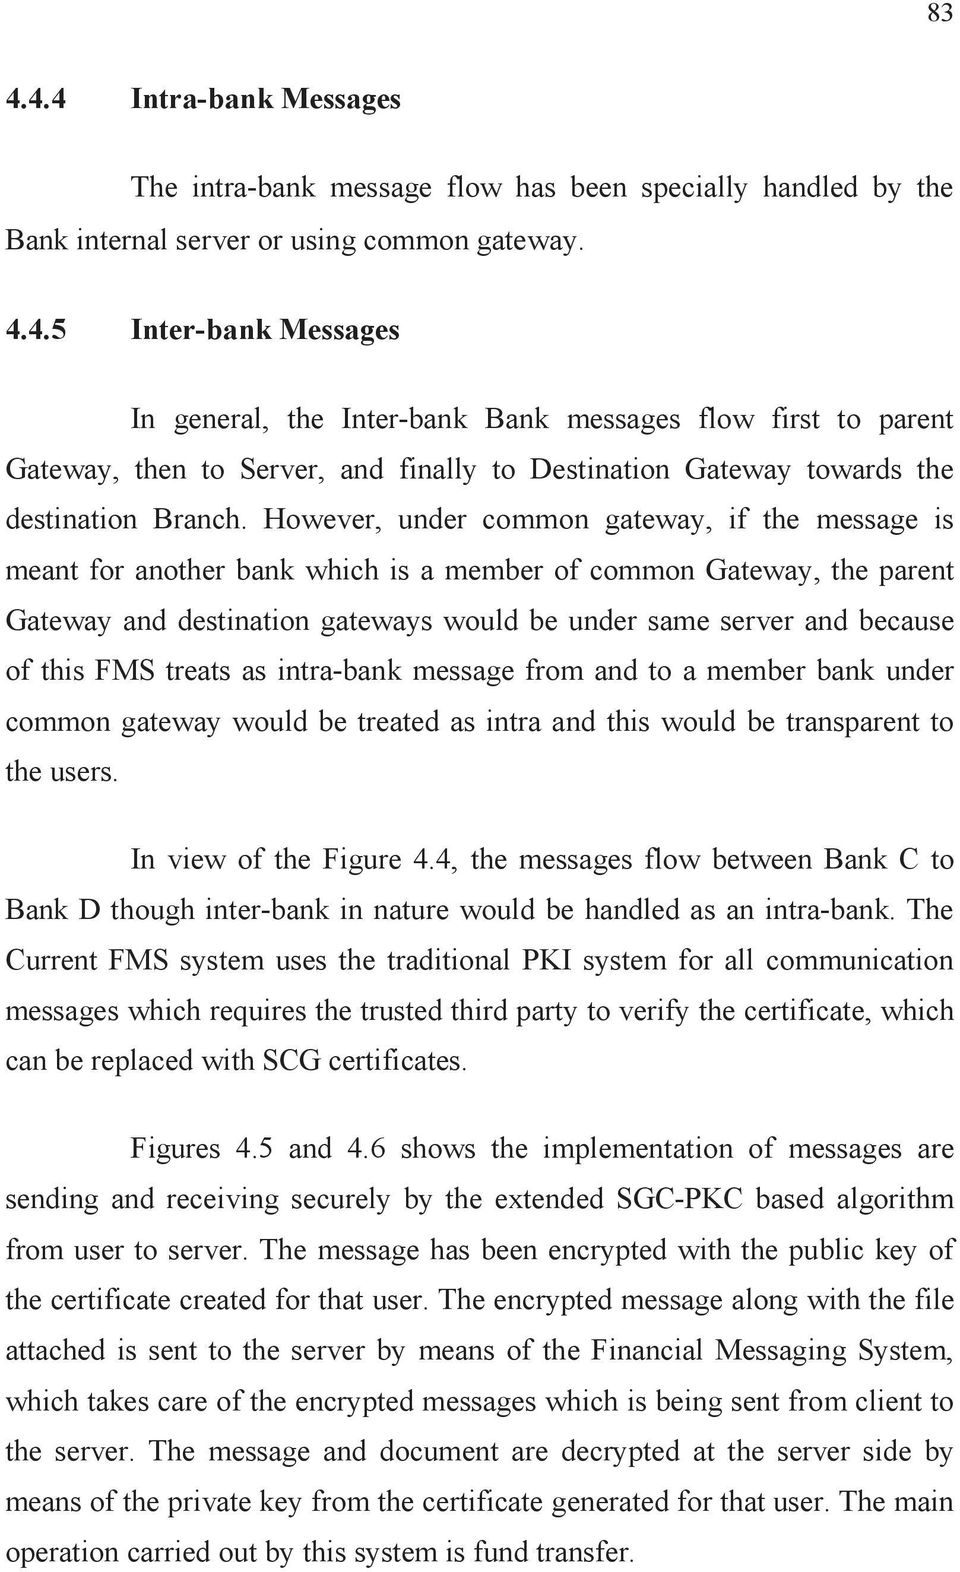 FMS treats as intra-bank message from and to a member bank under common gateway would be treated as intra and this would be transparent to the users. In view of the Figure 4.